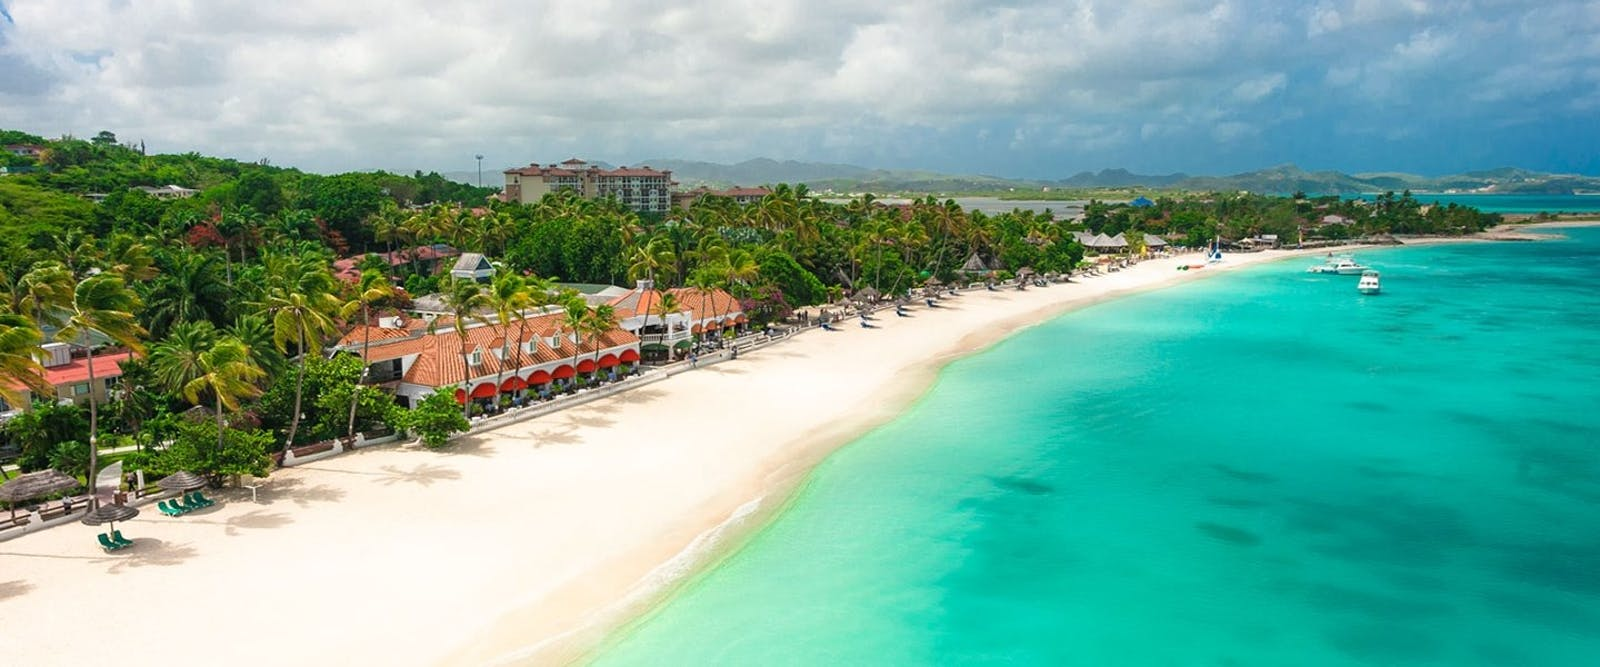 0ed3245cf7fe 1 12 - Caribbean Village Beach at Sandals Grande Antigua